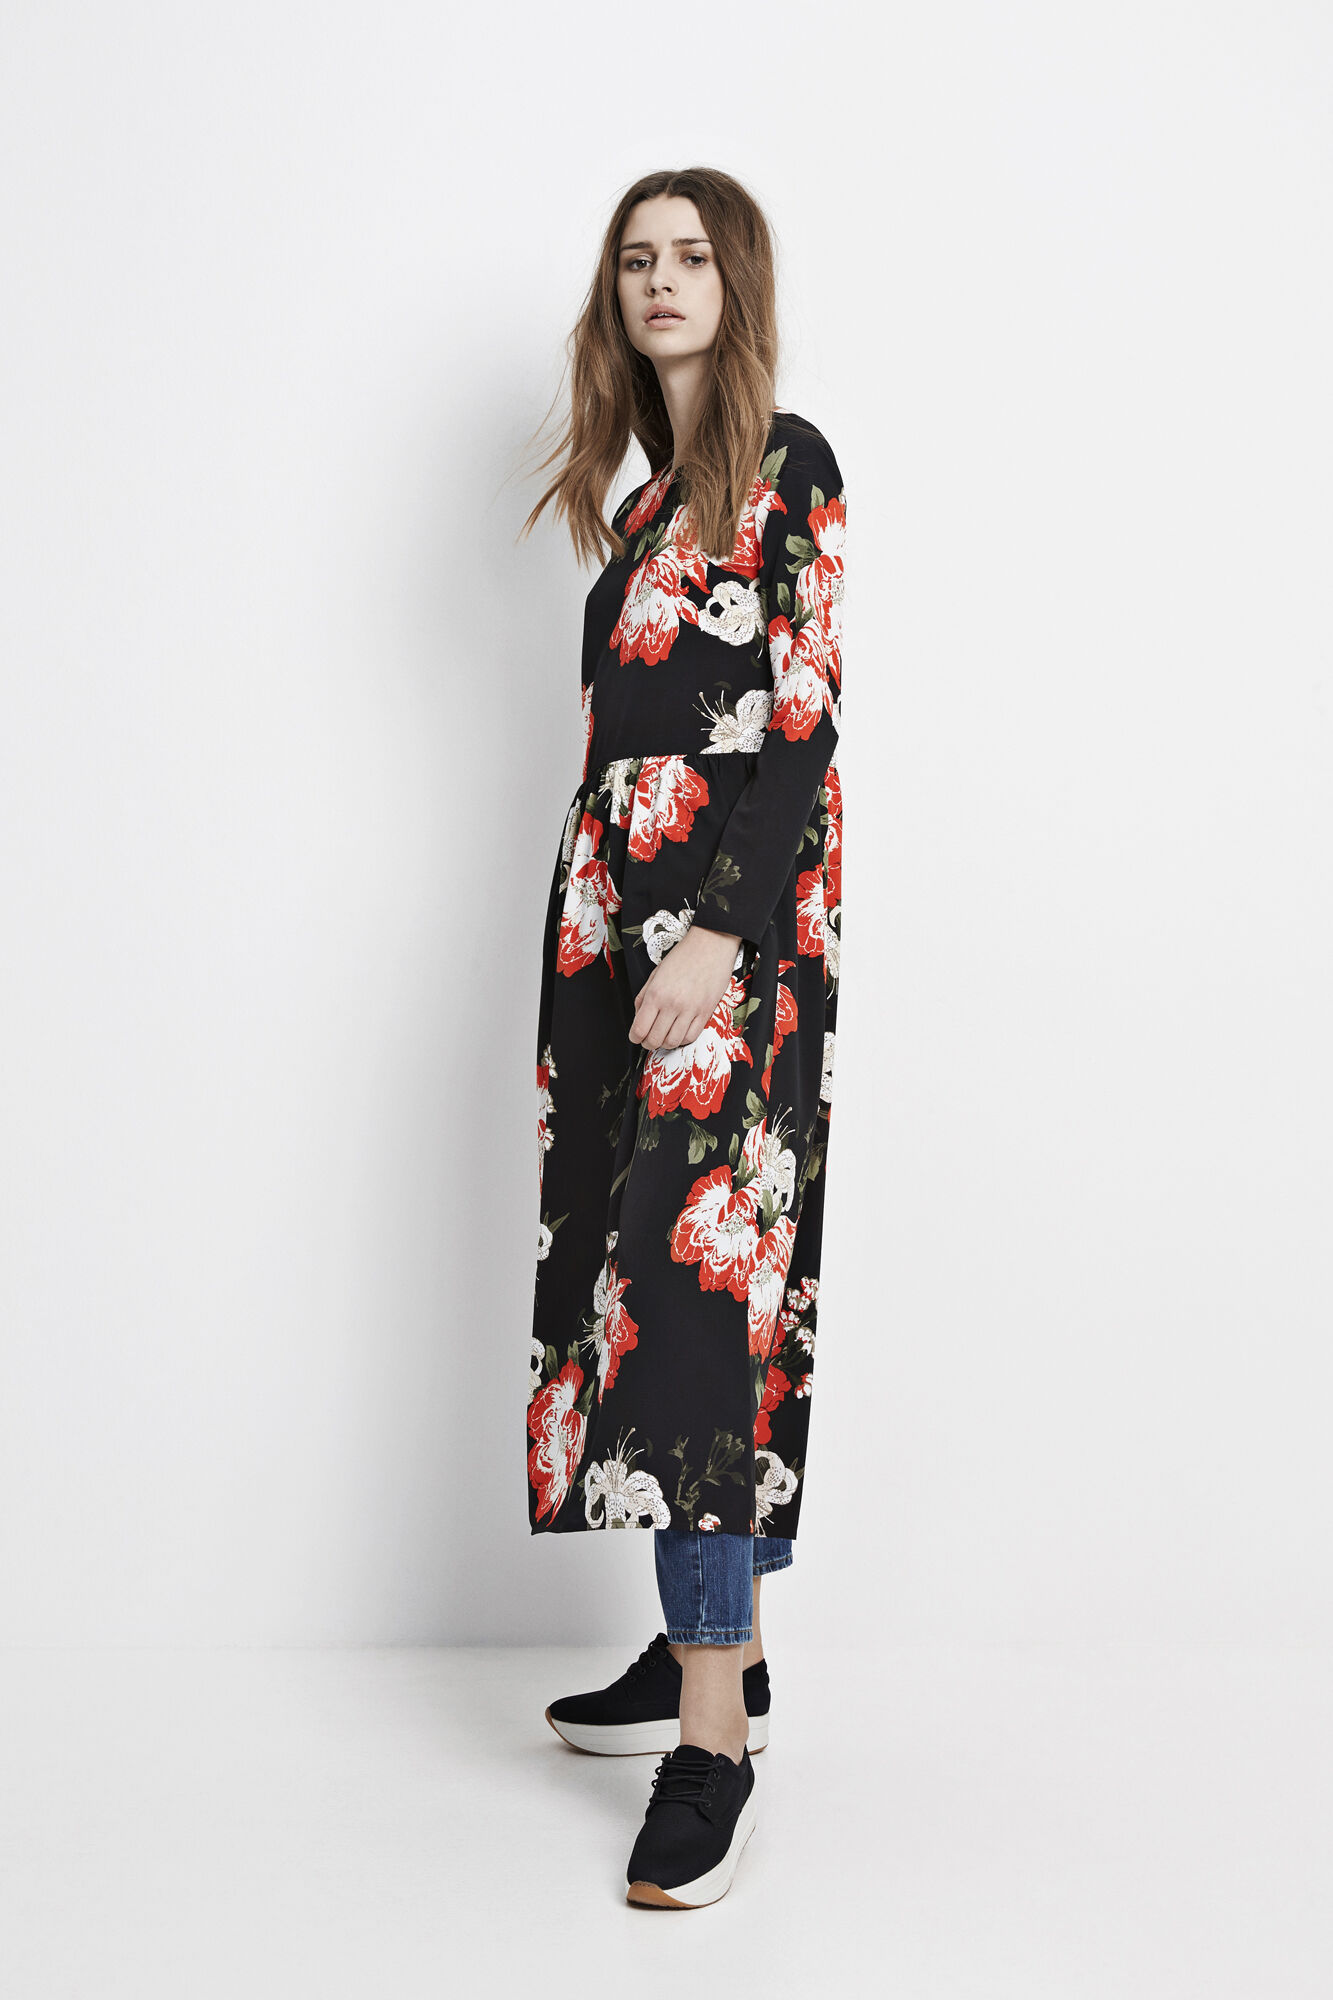 ENMOANA LS MAXI DRESS AOP 6460, PUA DARK AOP